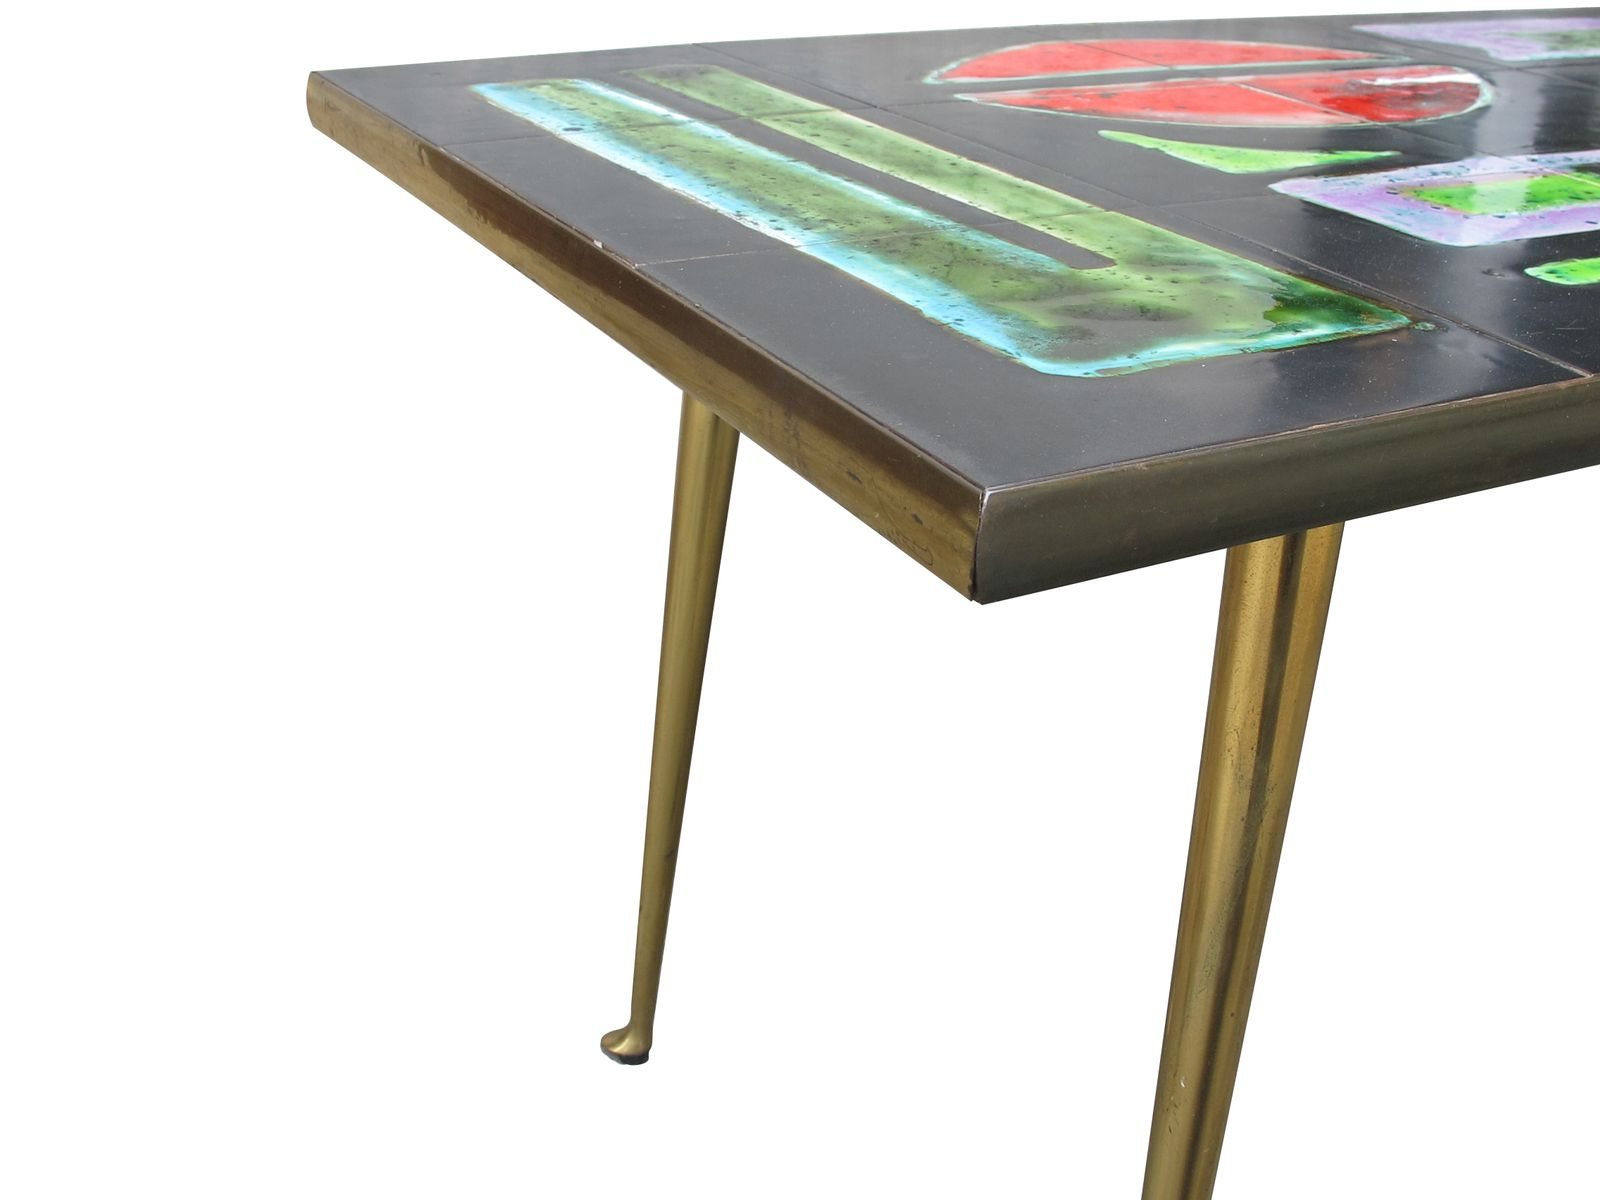 Vintage Mosaic Coffee Table For Sale At Pamono